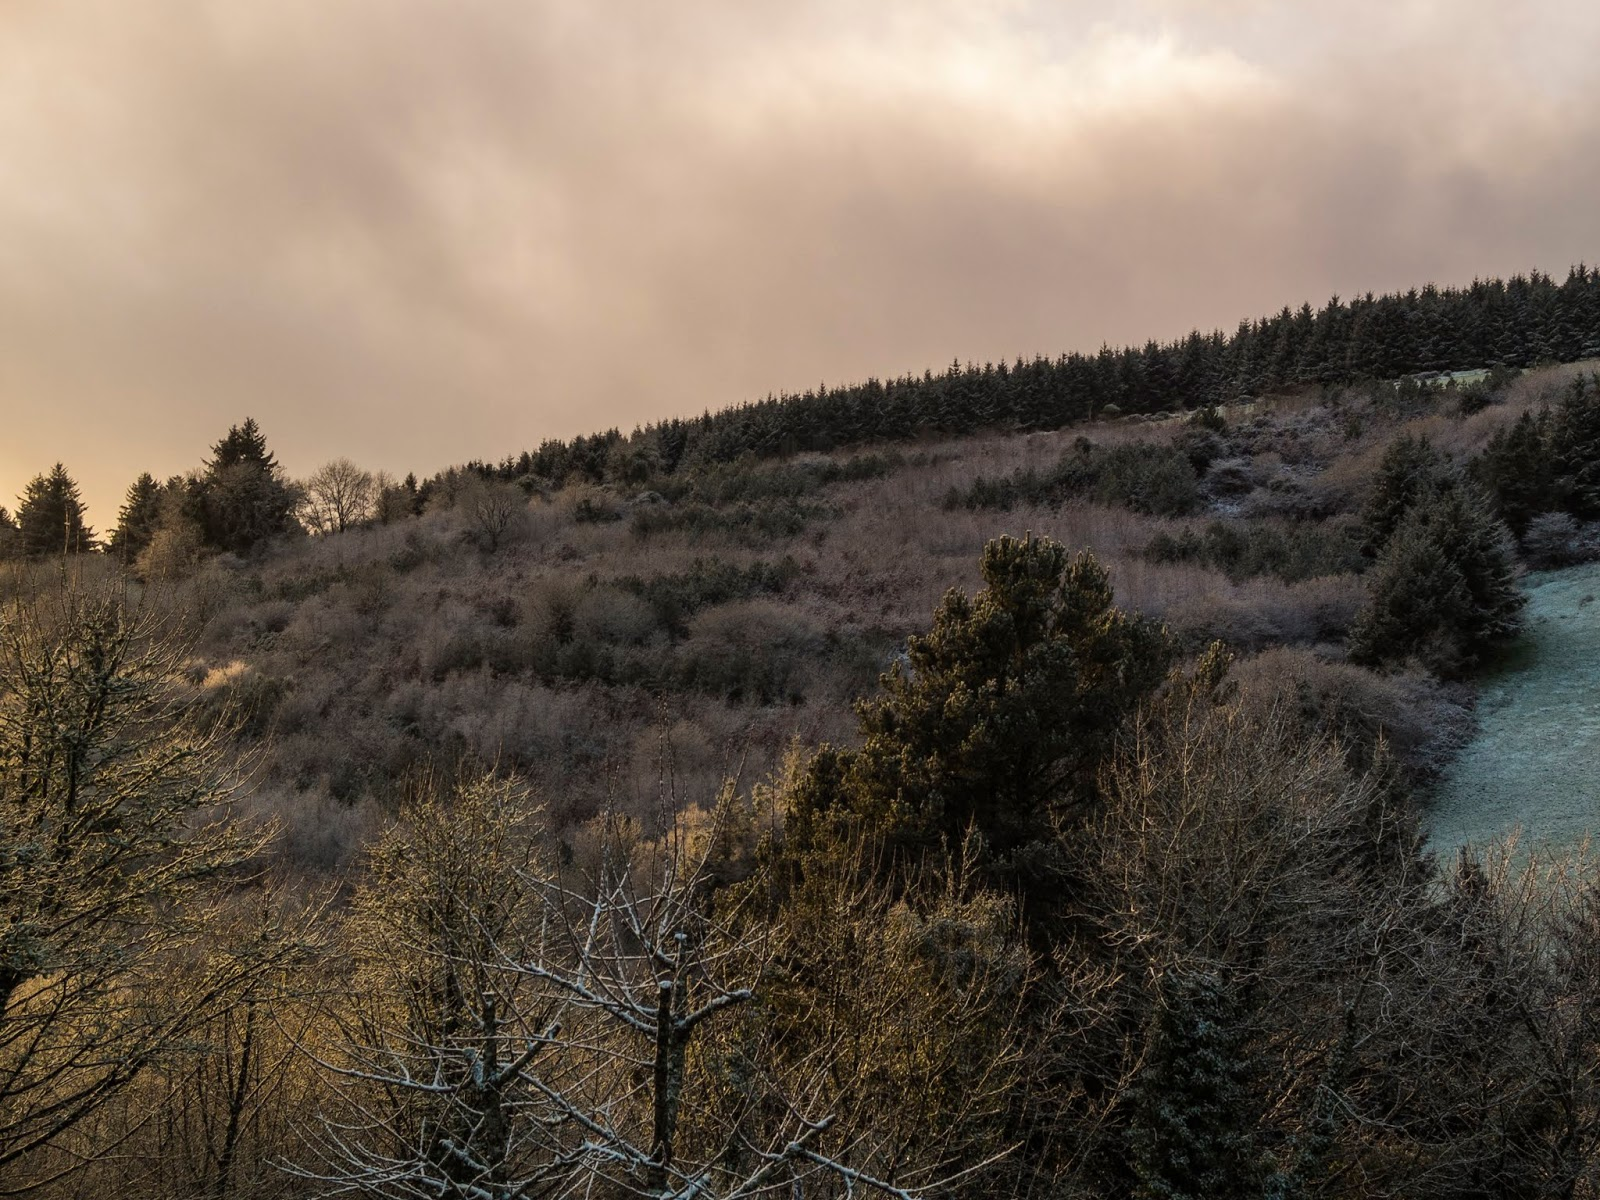 Snowy hillside at sunset captured in the Boggeragh Mountains in North Cork.